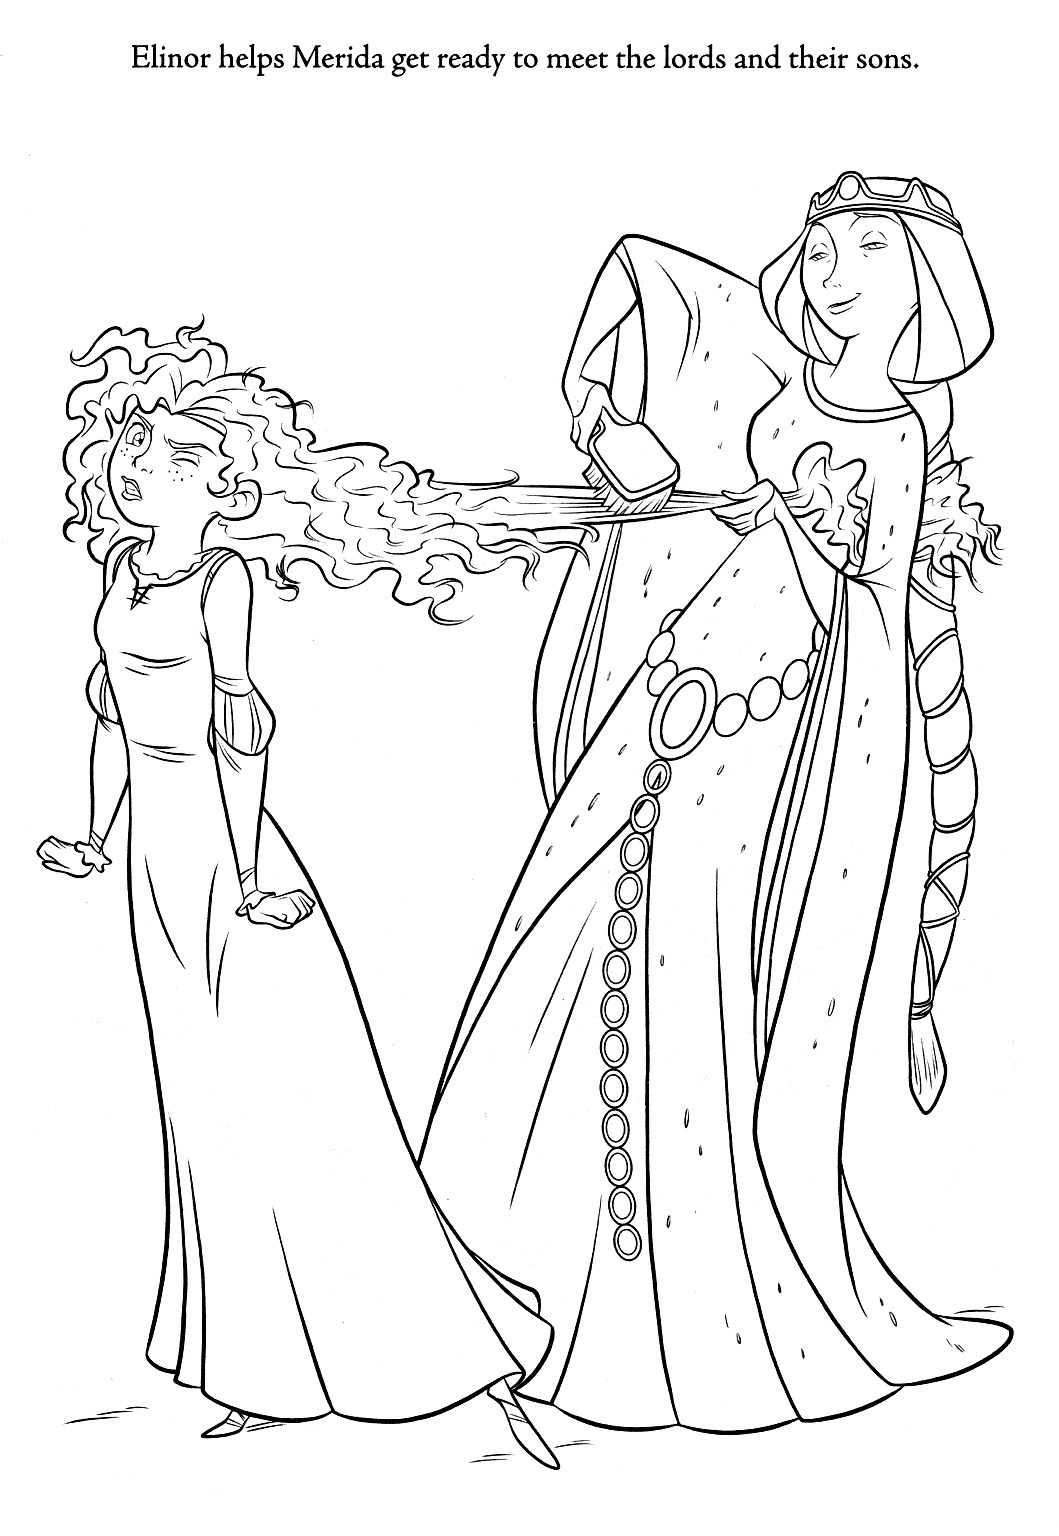 Merida Coloring Pages Brave Coloring Pages For Kids Printable Coloring Page For Kids